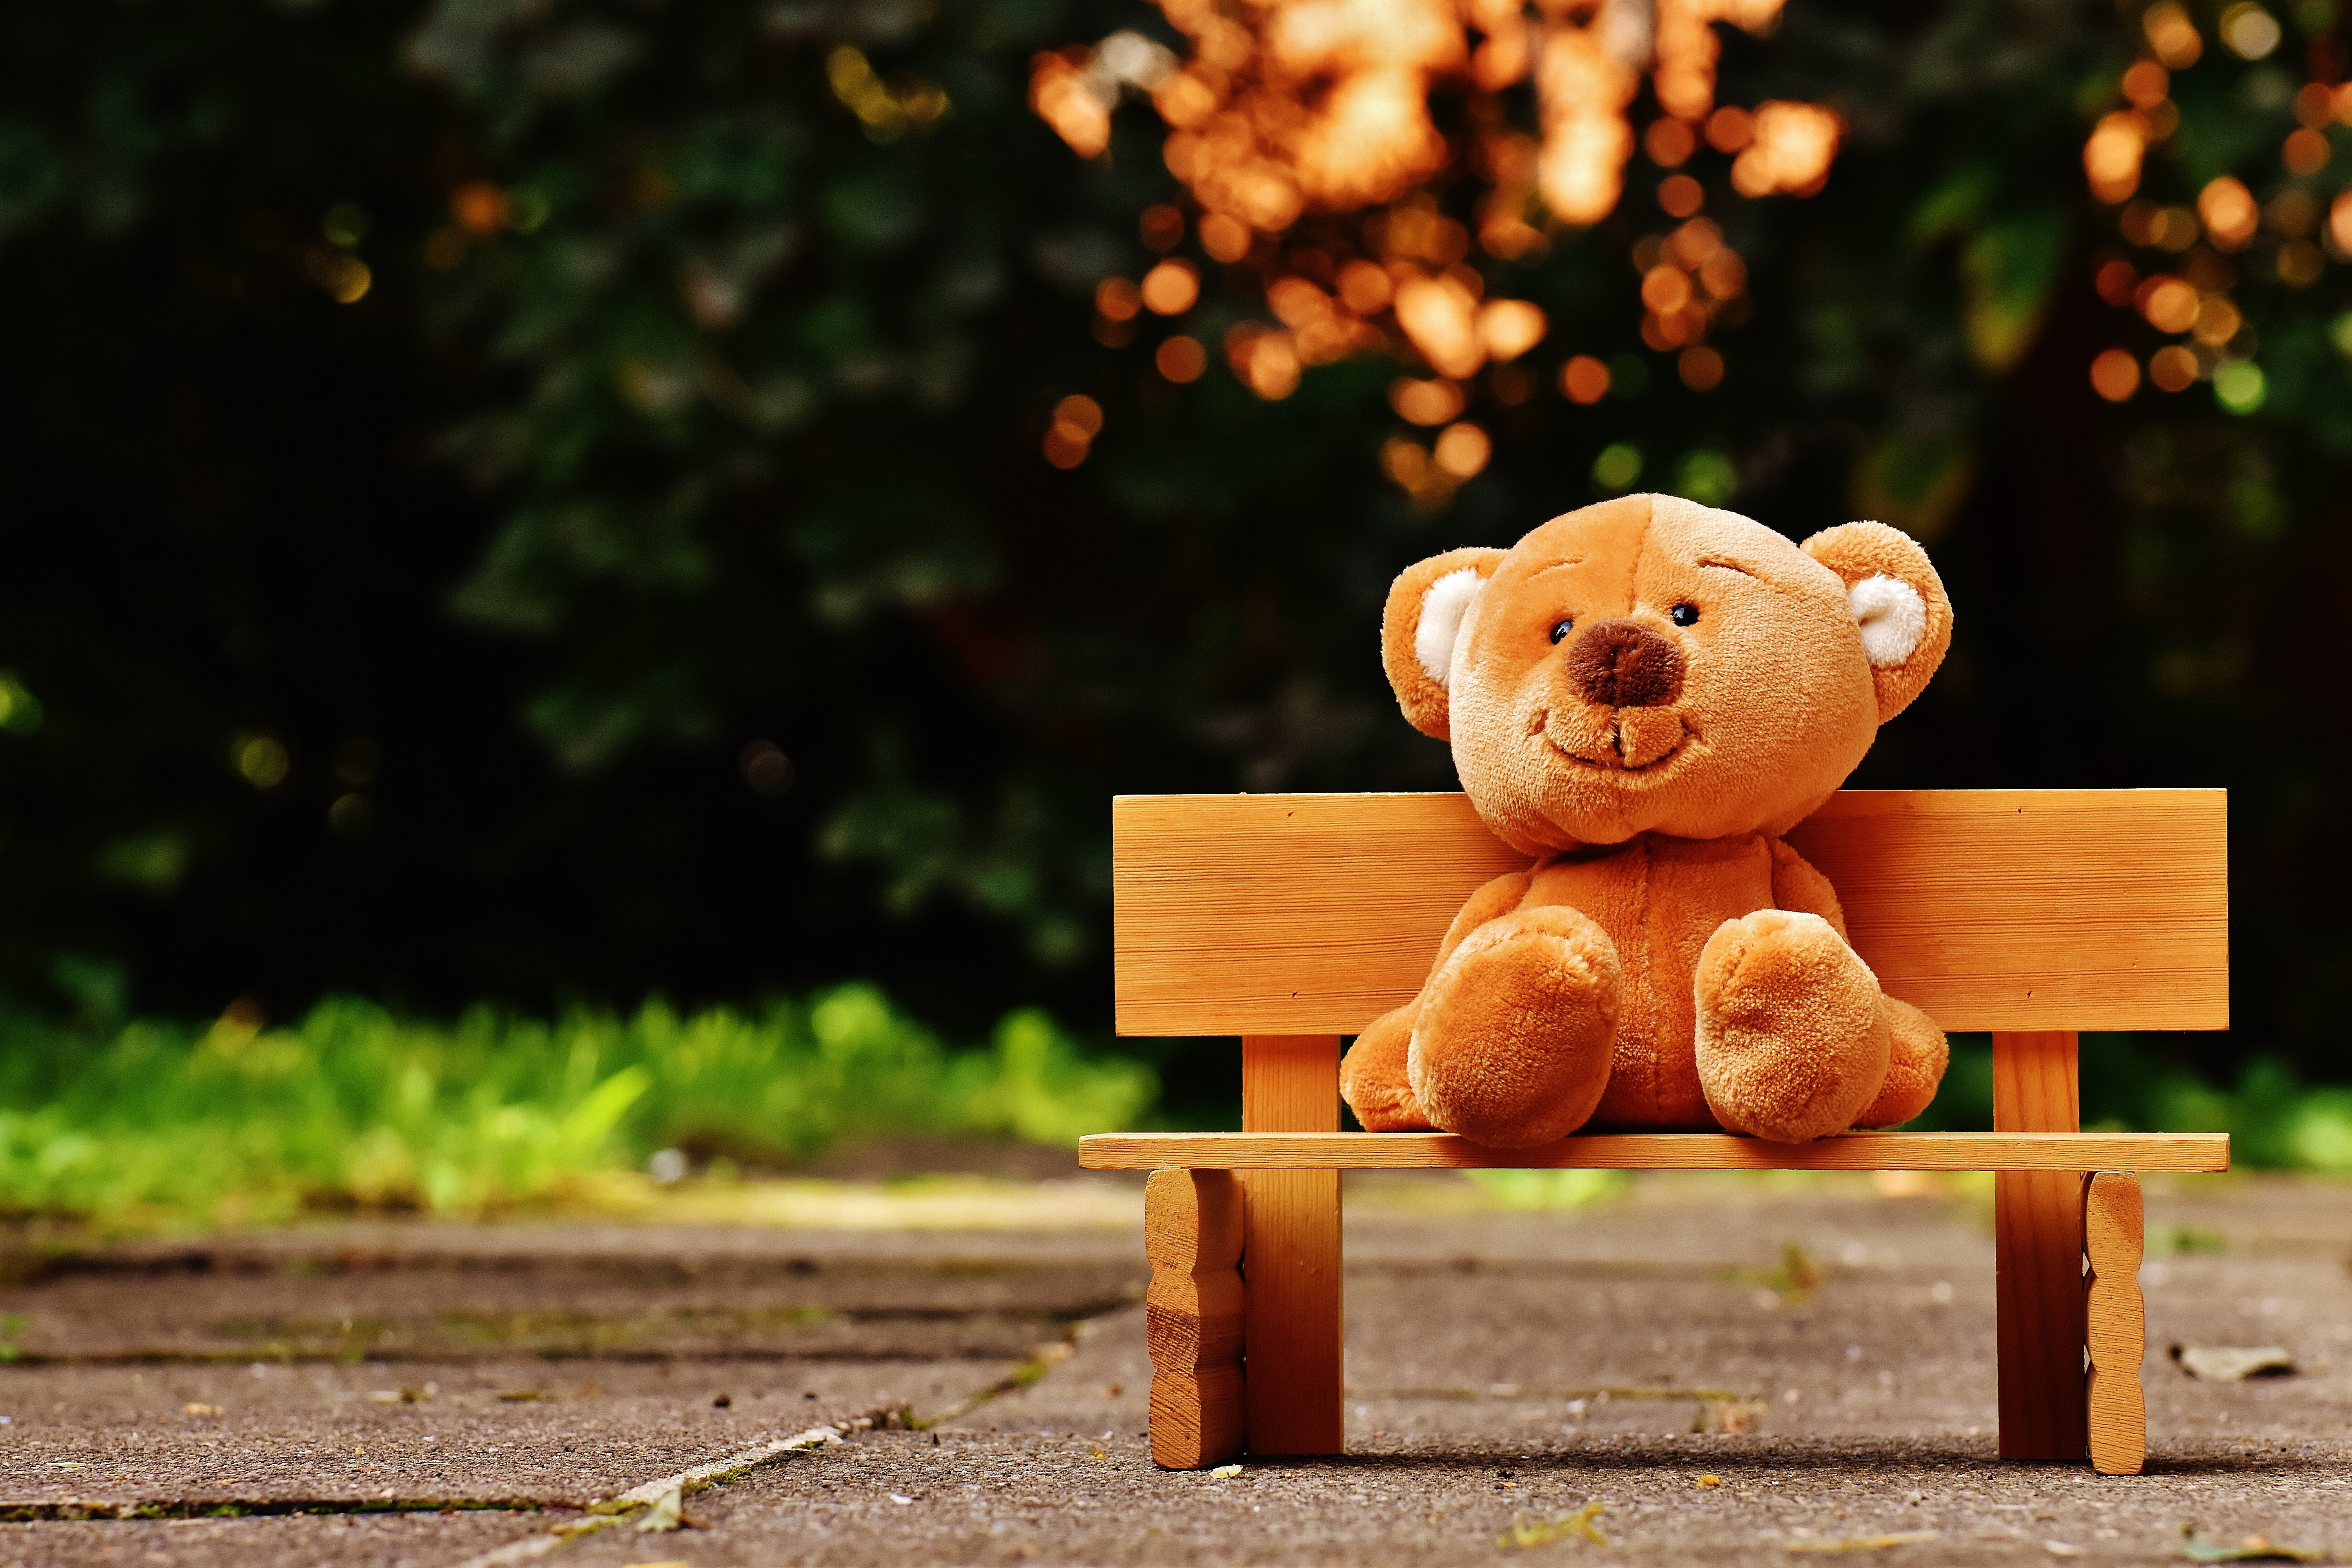 Cute Wallpaper Images For Dp Brown Teddy Bear On Brown Wooden Bench Outside 183 Free